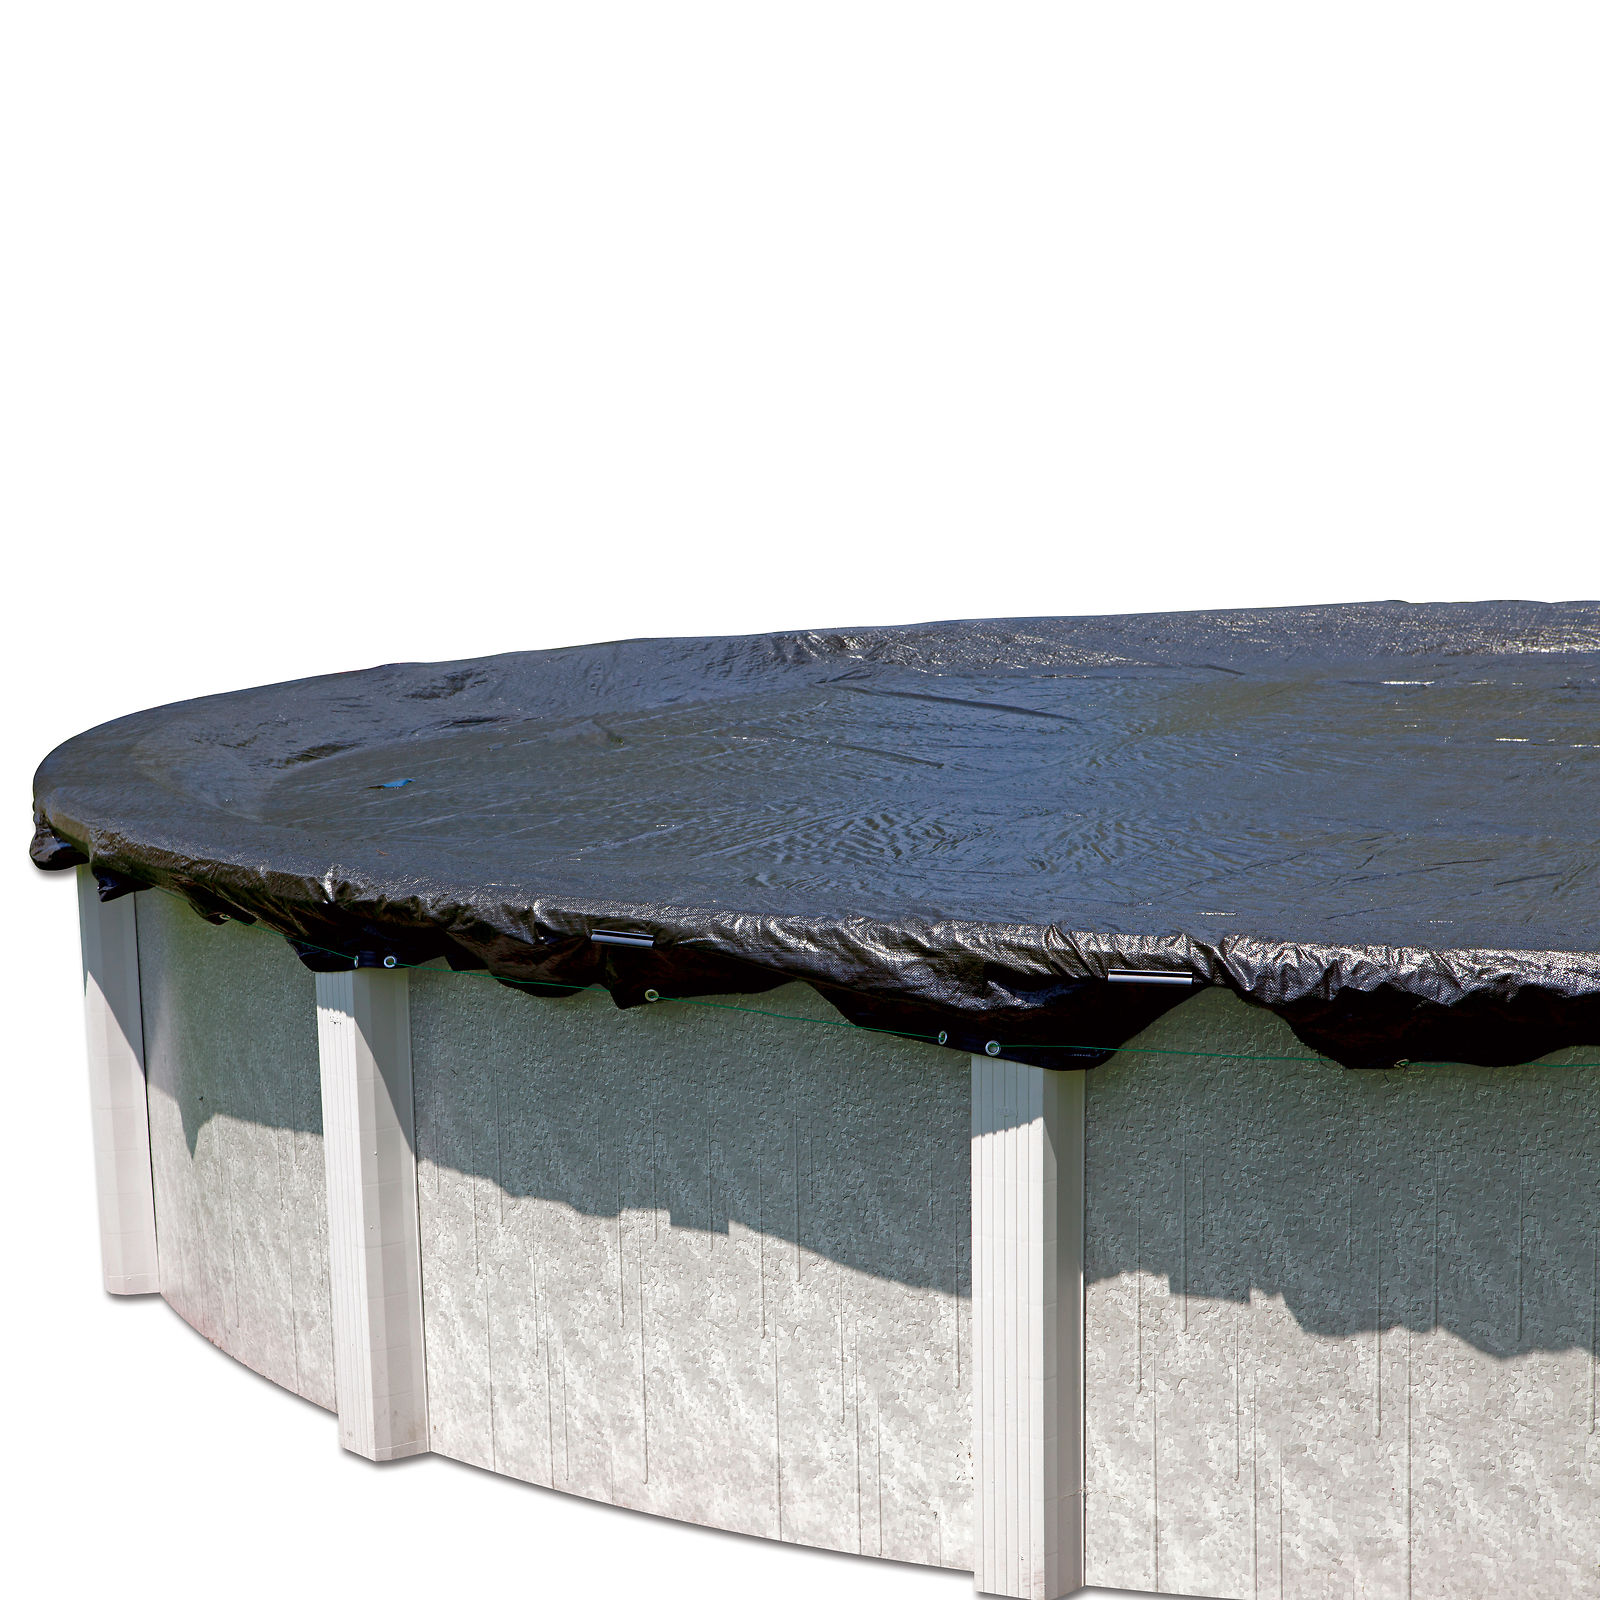 Above Ground Pool Winter Cover Details About 24 Ft Round 3 Year Fine Mesh Above Ground Swimming Pool Winter Cover